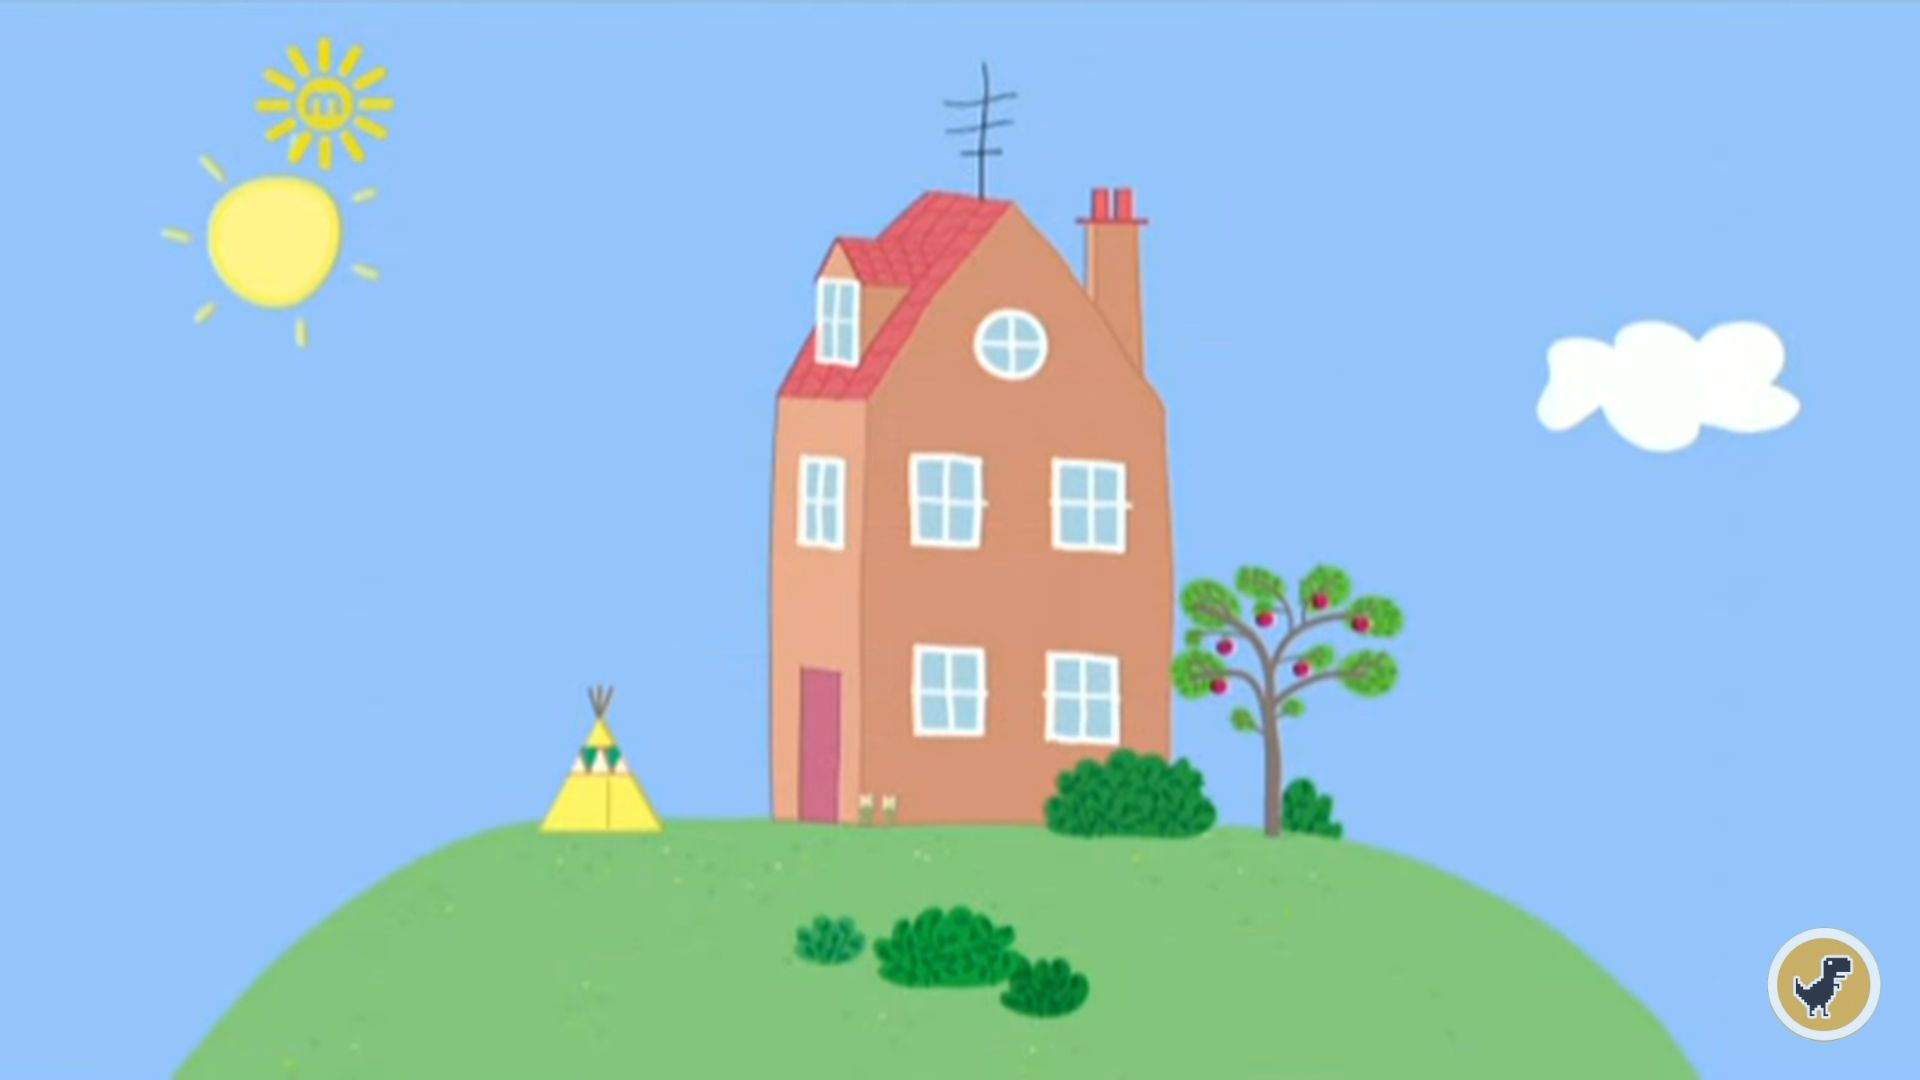 Peppa Pig House Wallpapers - Wallpaper Cave